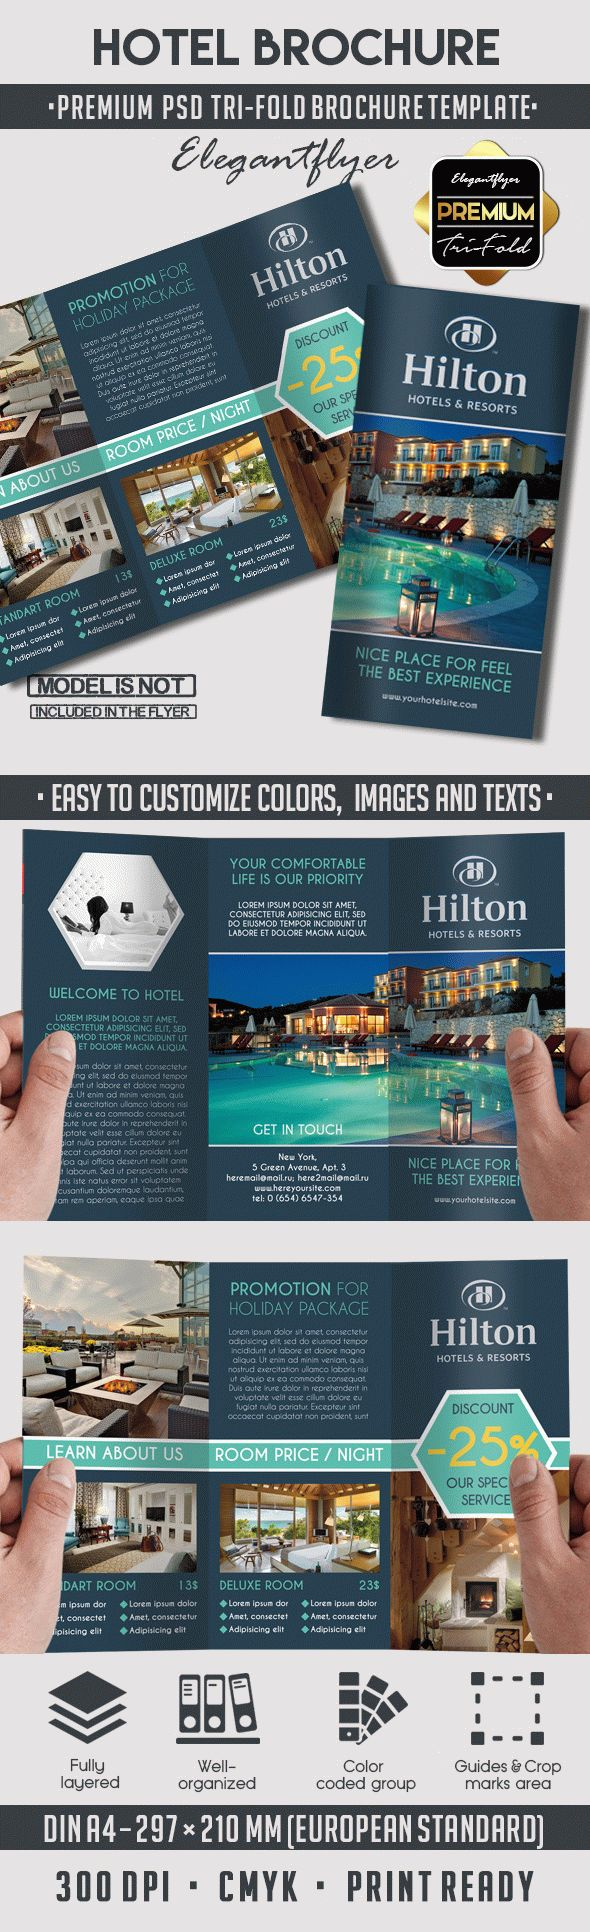 photoshop tri fold brochure template free - hotel premium tri fold psd brochure template by